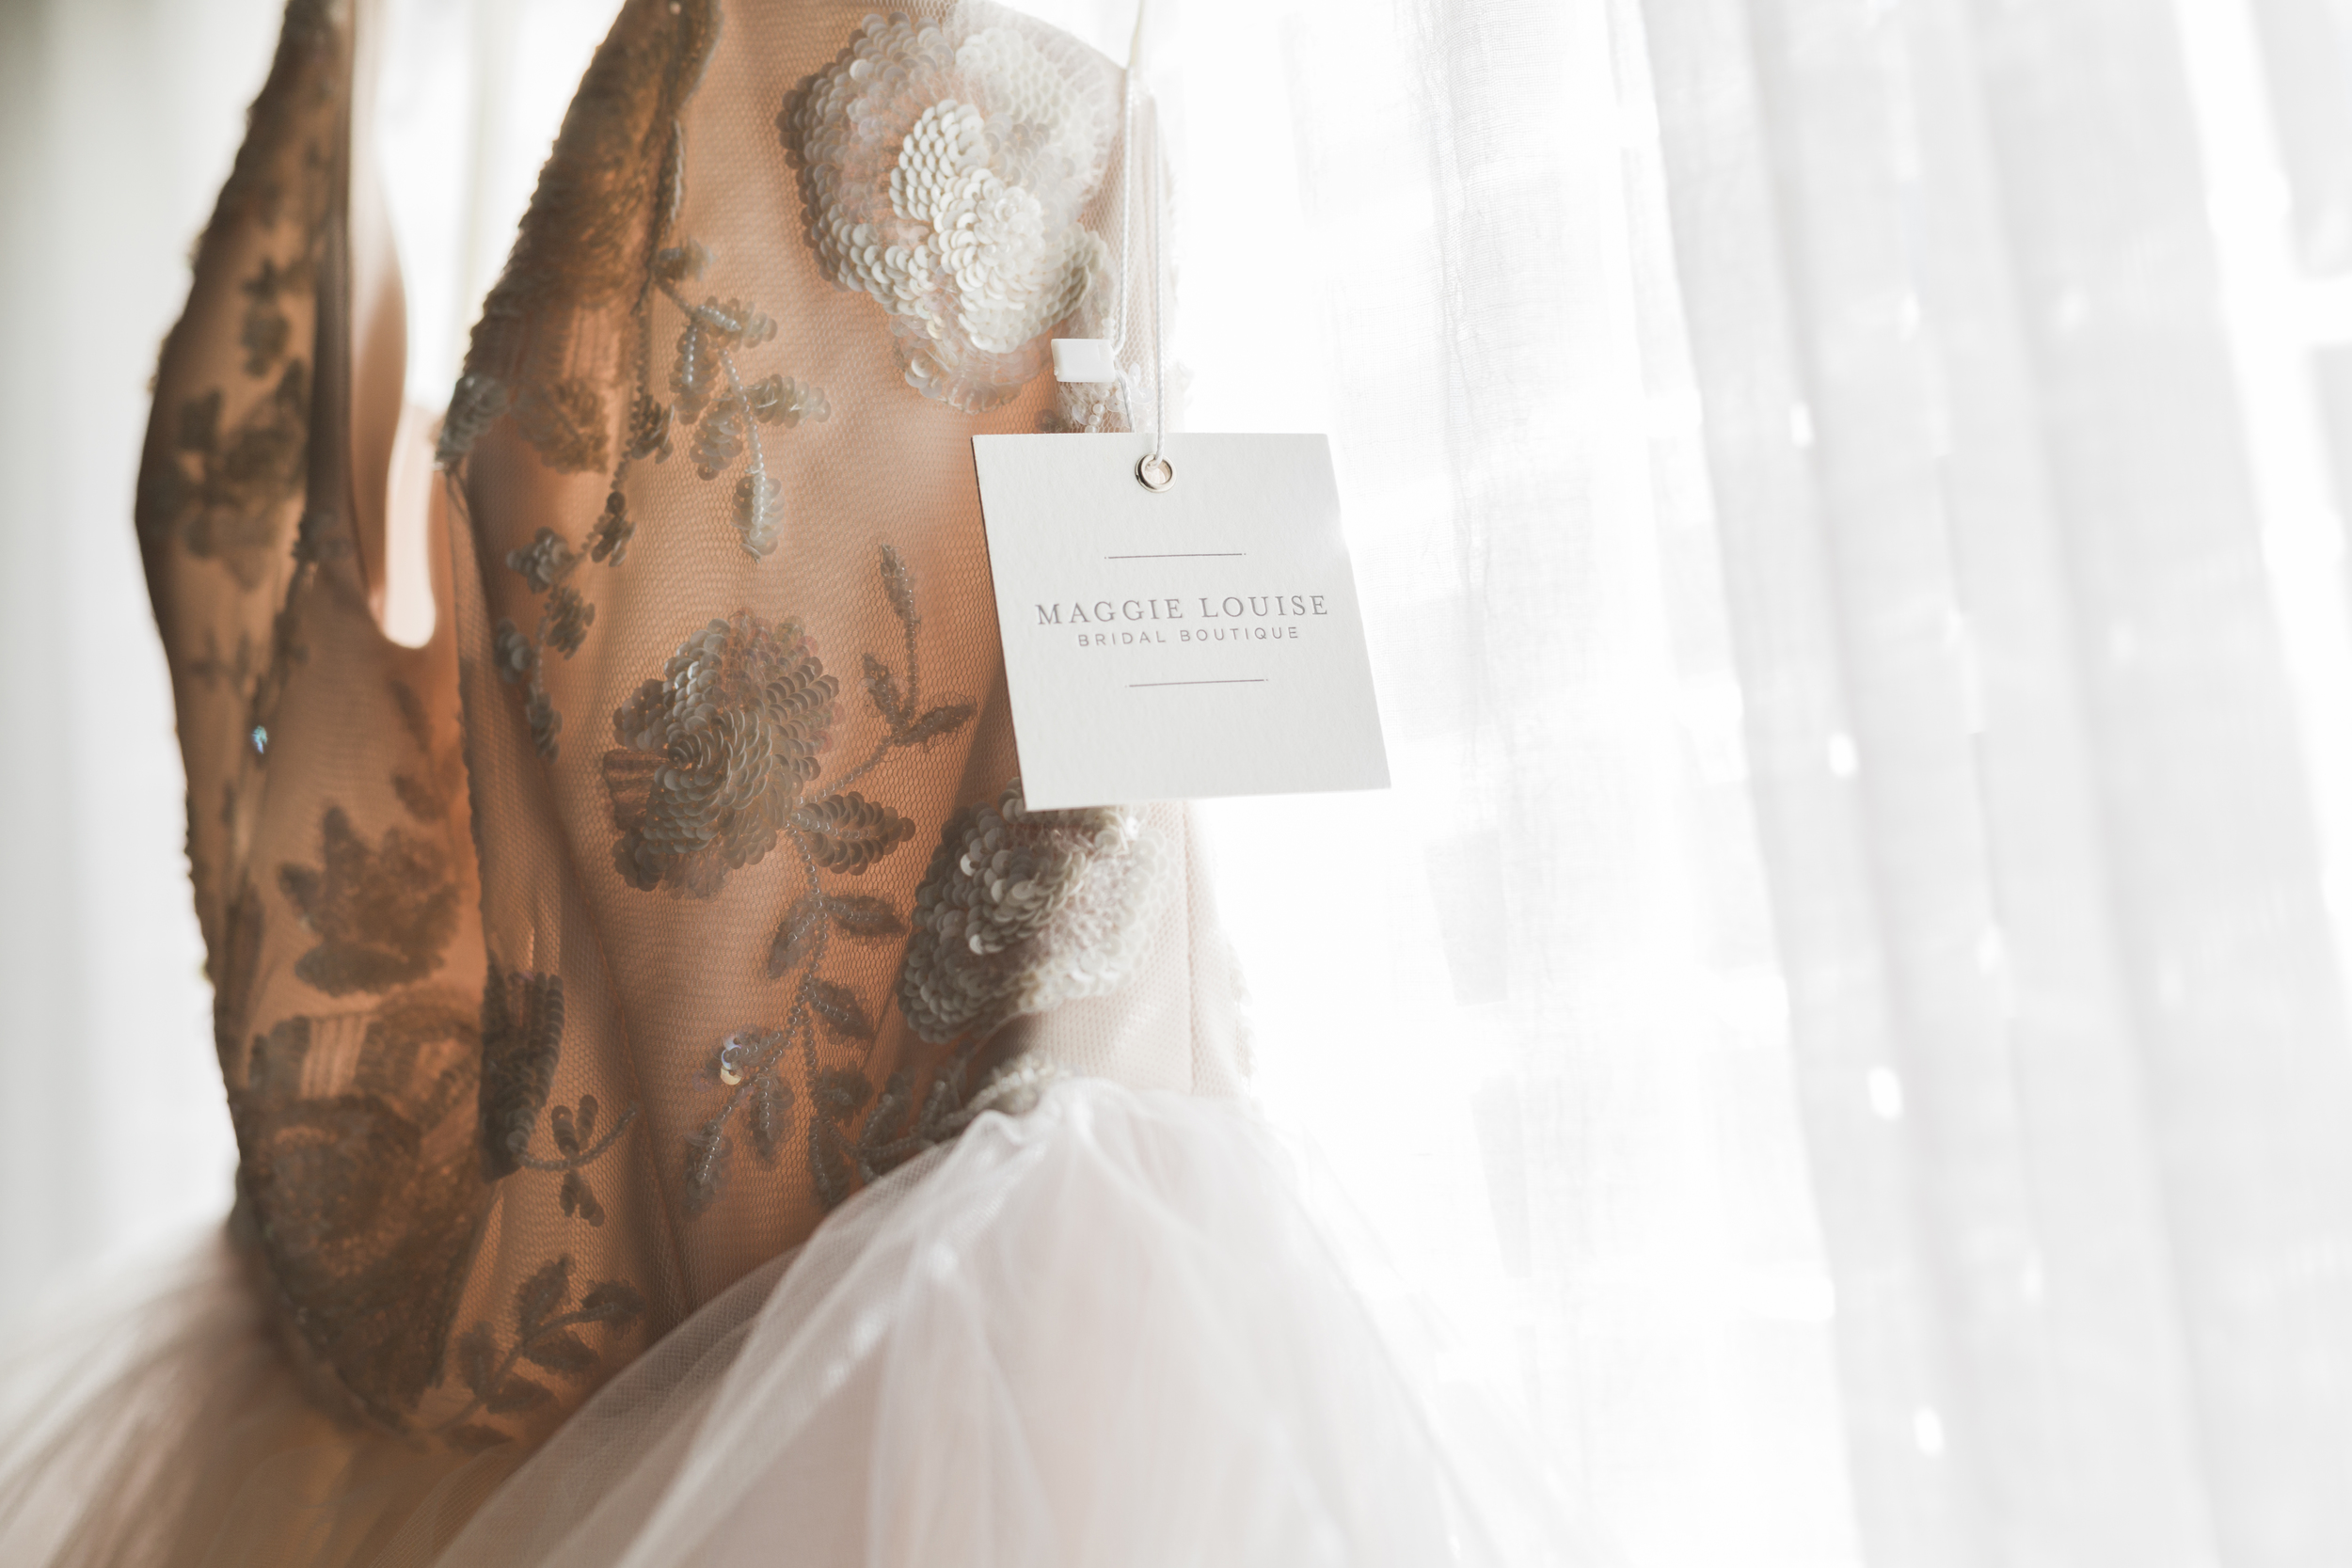 Sara + Matt + Elaa_Give Back Bride_K. Stoddard Photography_Styled Bridal Shoot 032.jpg